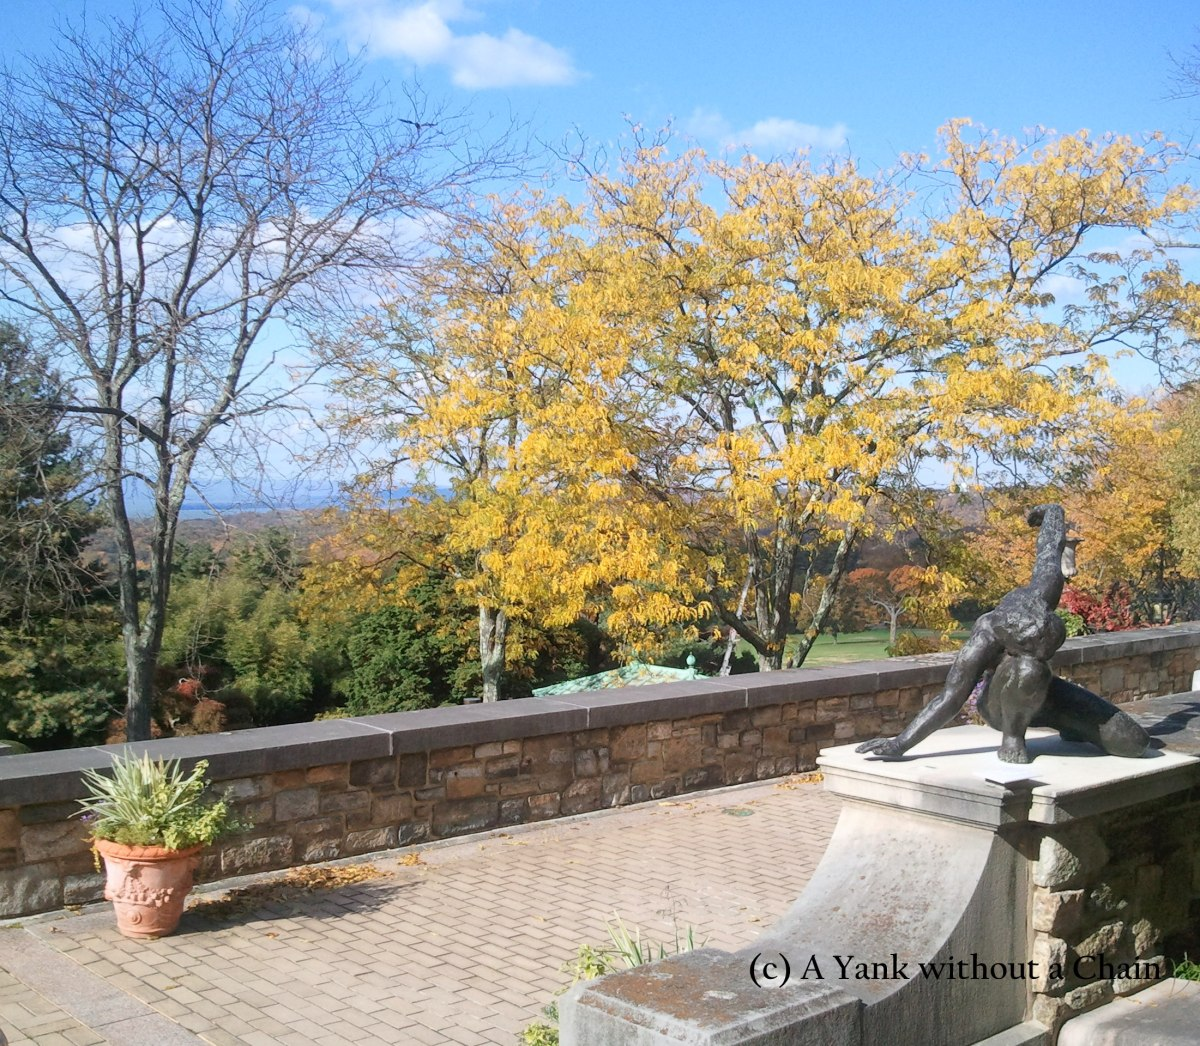 A terrace overlooking the Hudson River at the Kykuit Estate